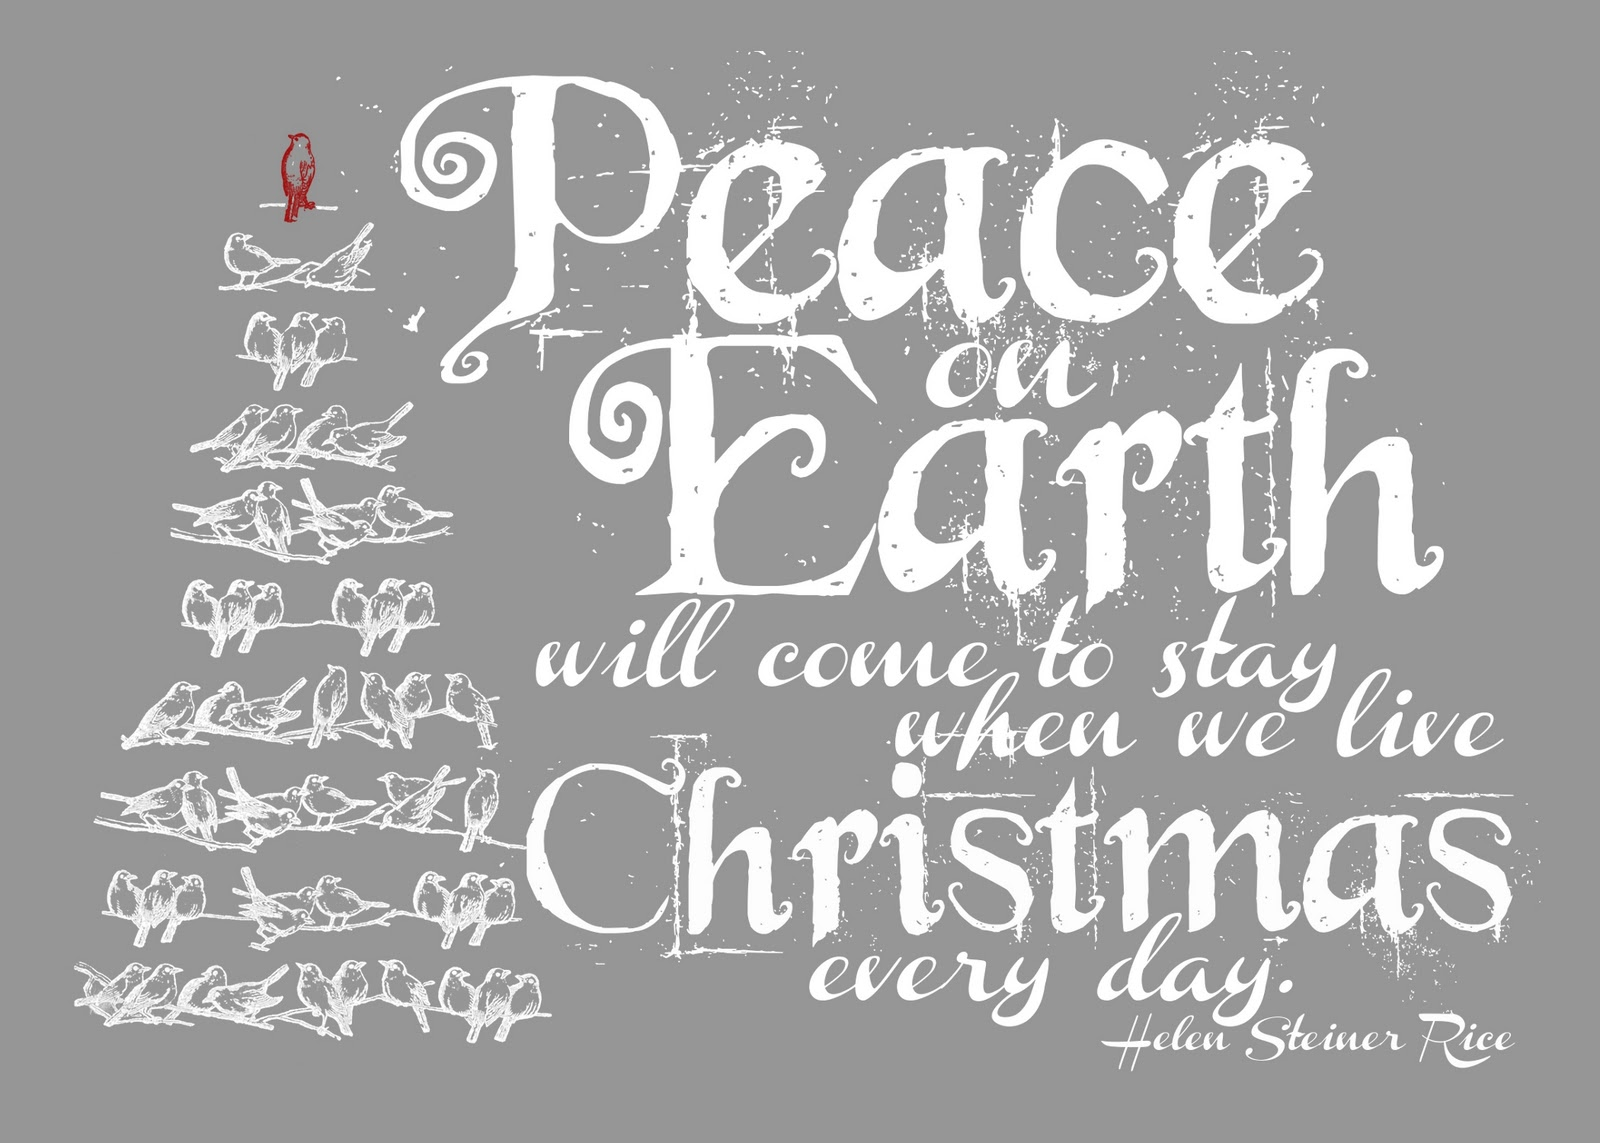 Peace Quotes And Sayings Quotesgram: Peace On Earth Quotes. QuotesGram